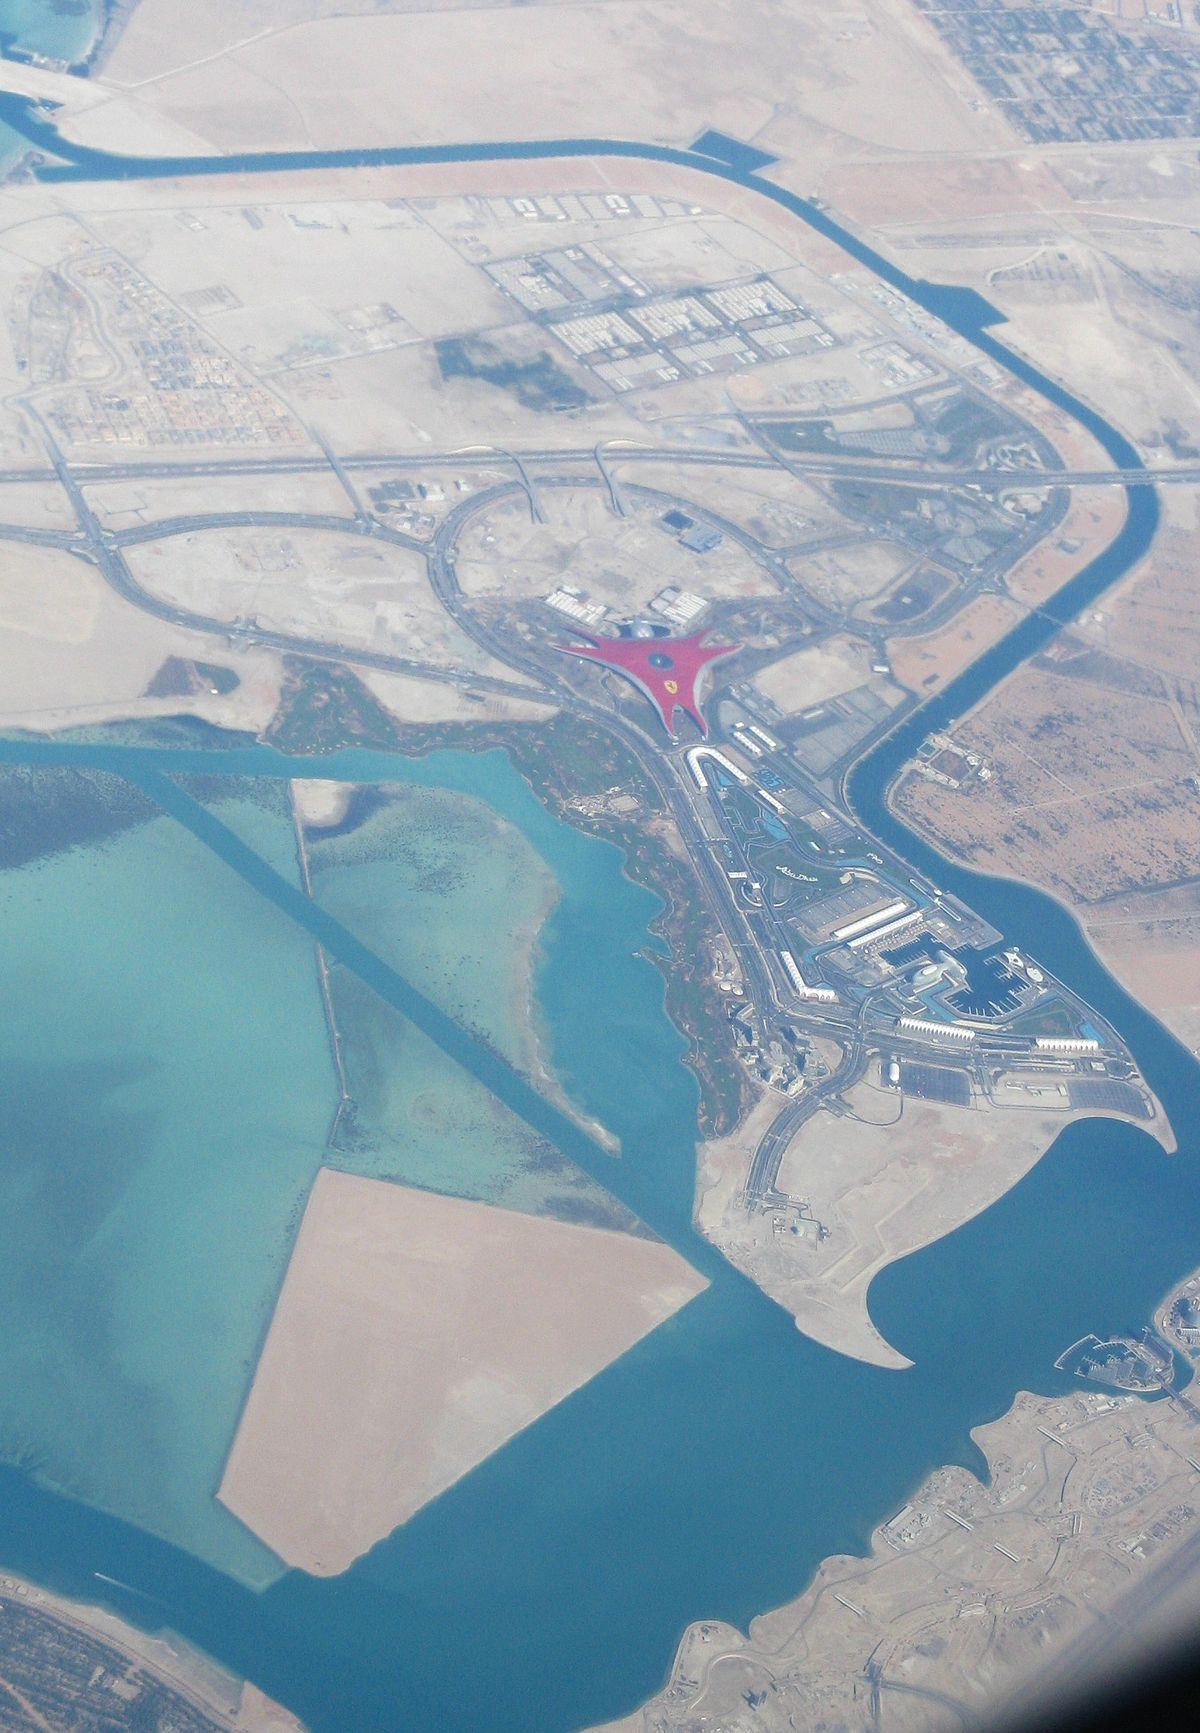 City Of Grand Island >> Yas Island – Travel guide at Wikivoyage